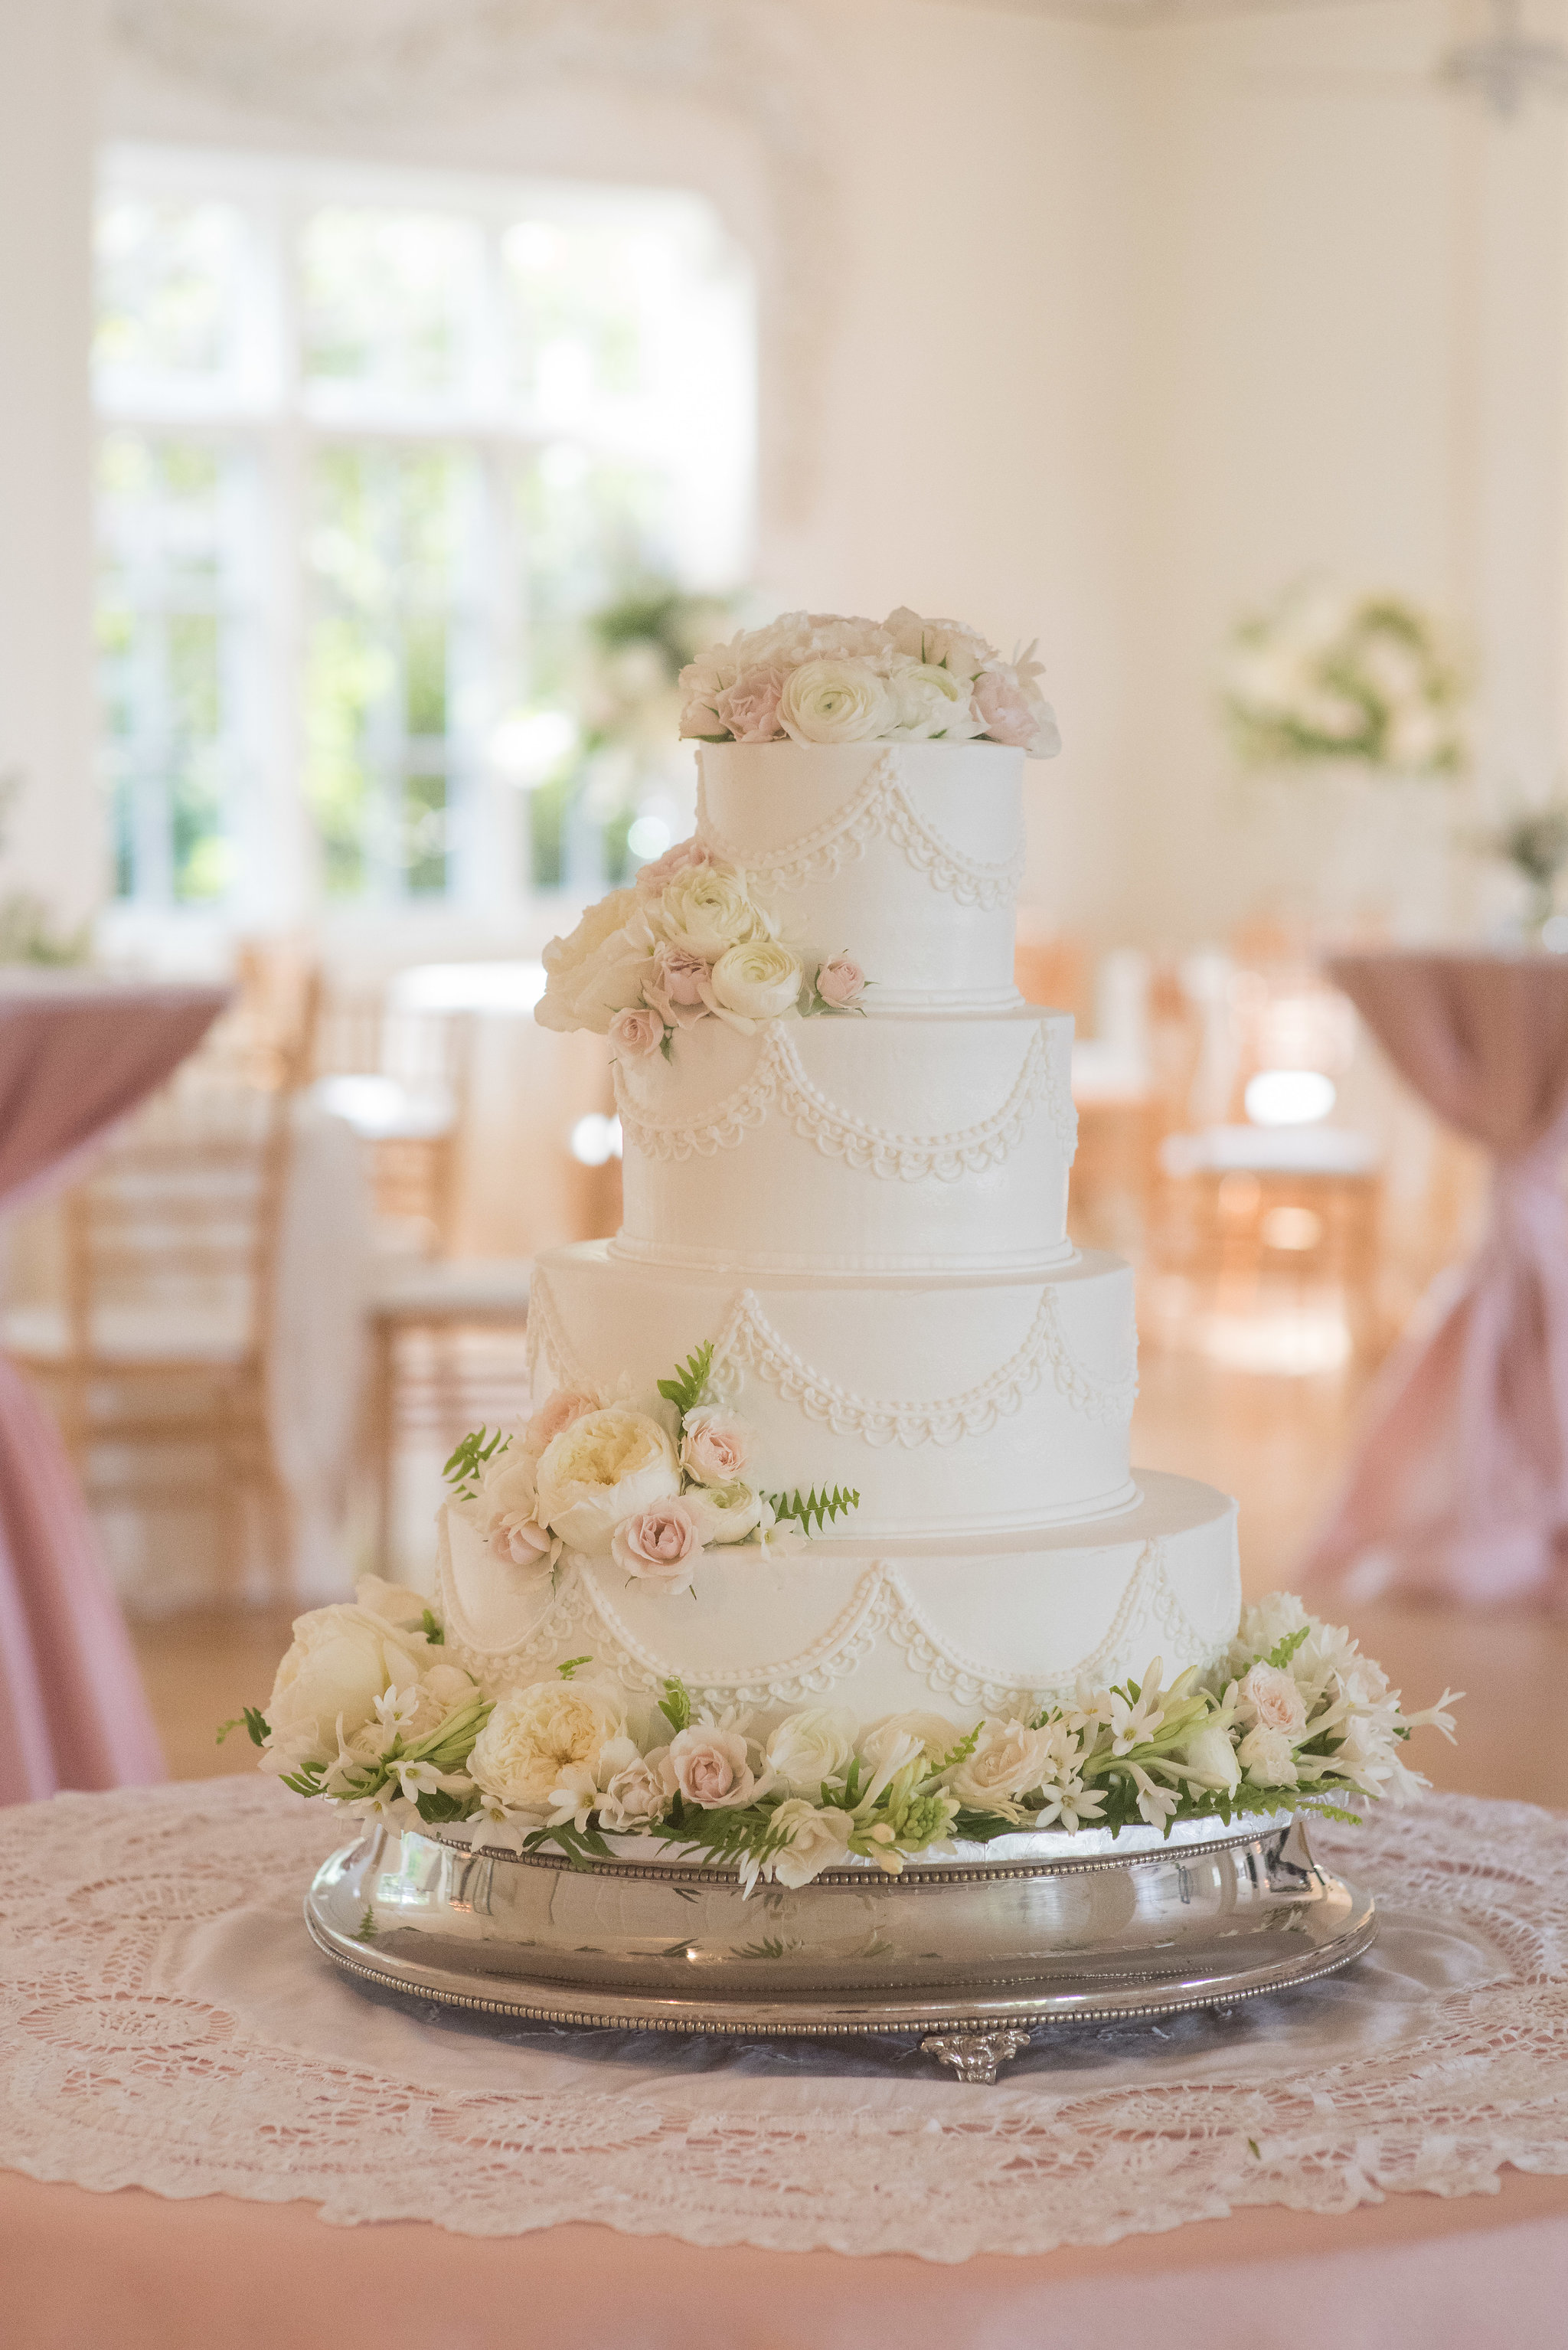 North Carolina Wedding, Events by Reagan, Destination Wedding Planner, Wedding cake